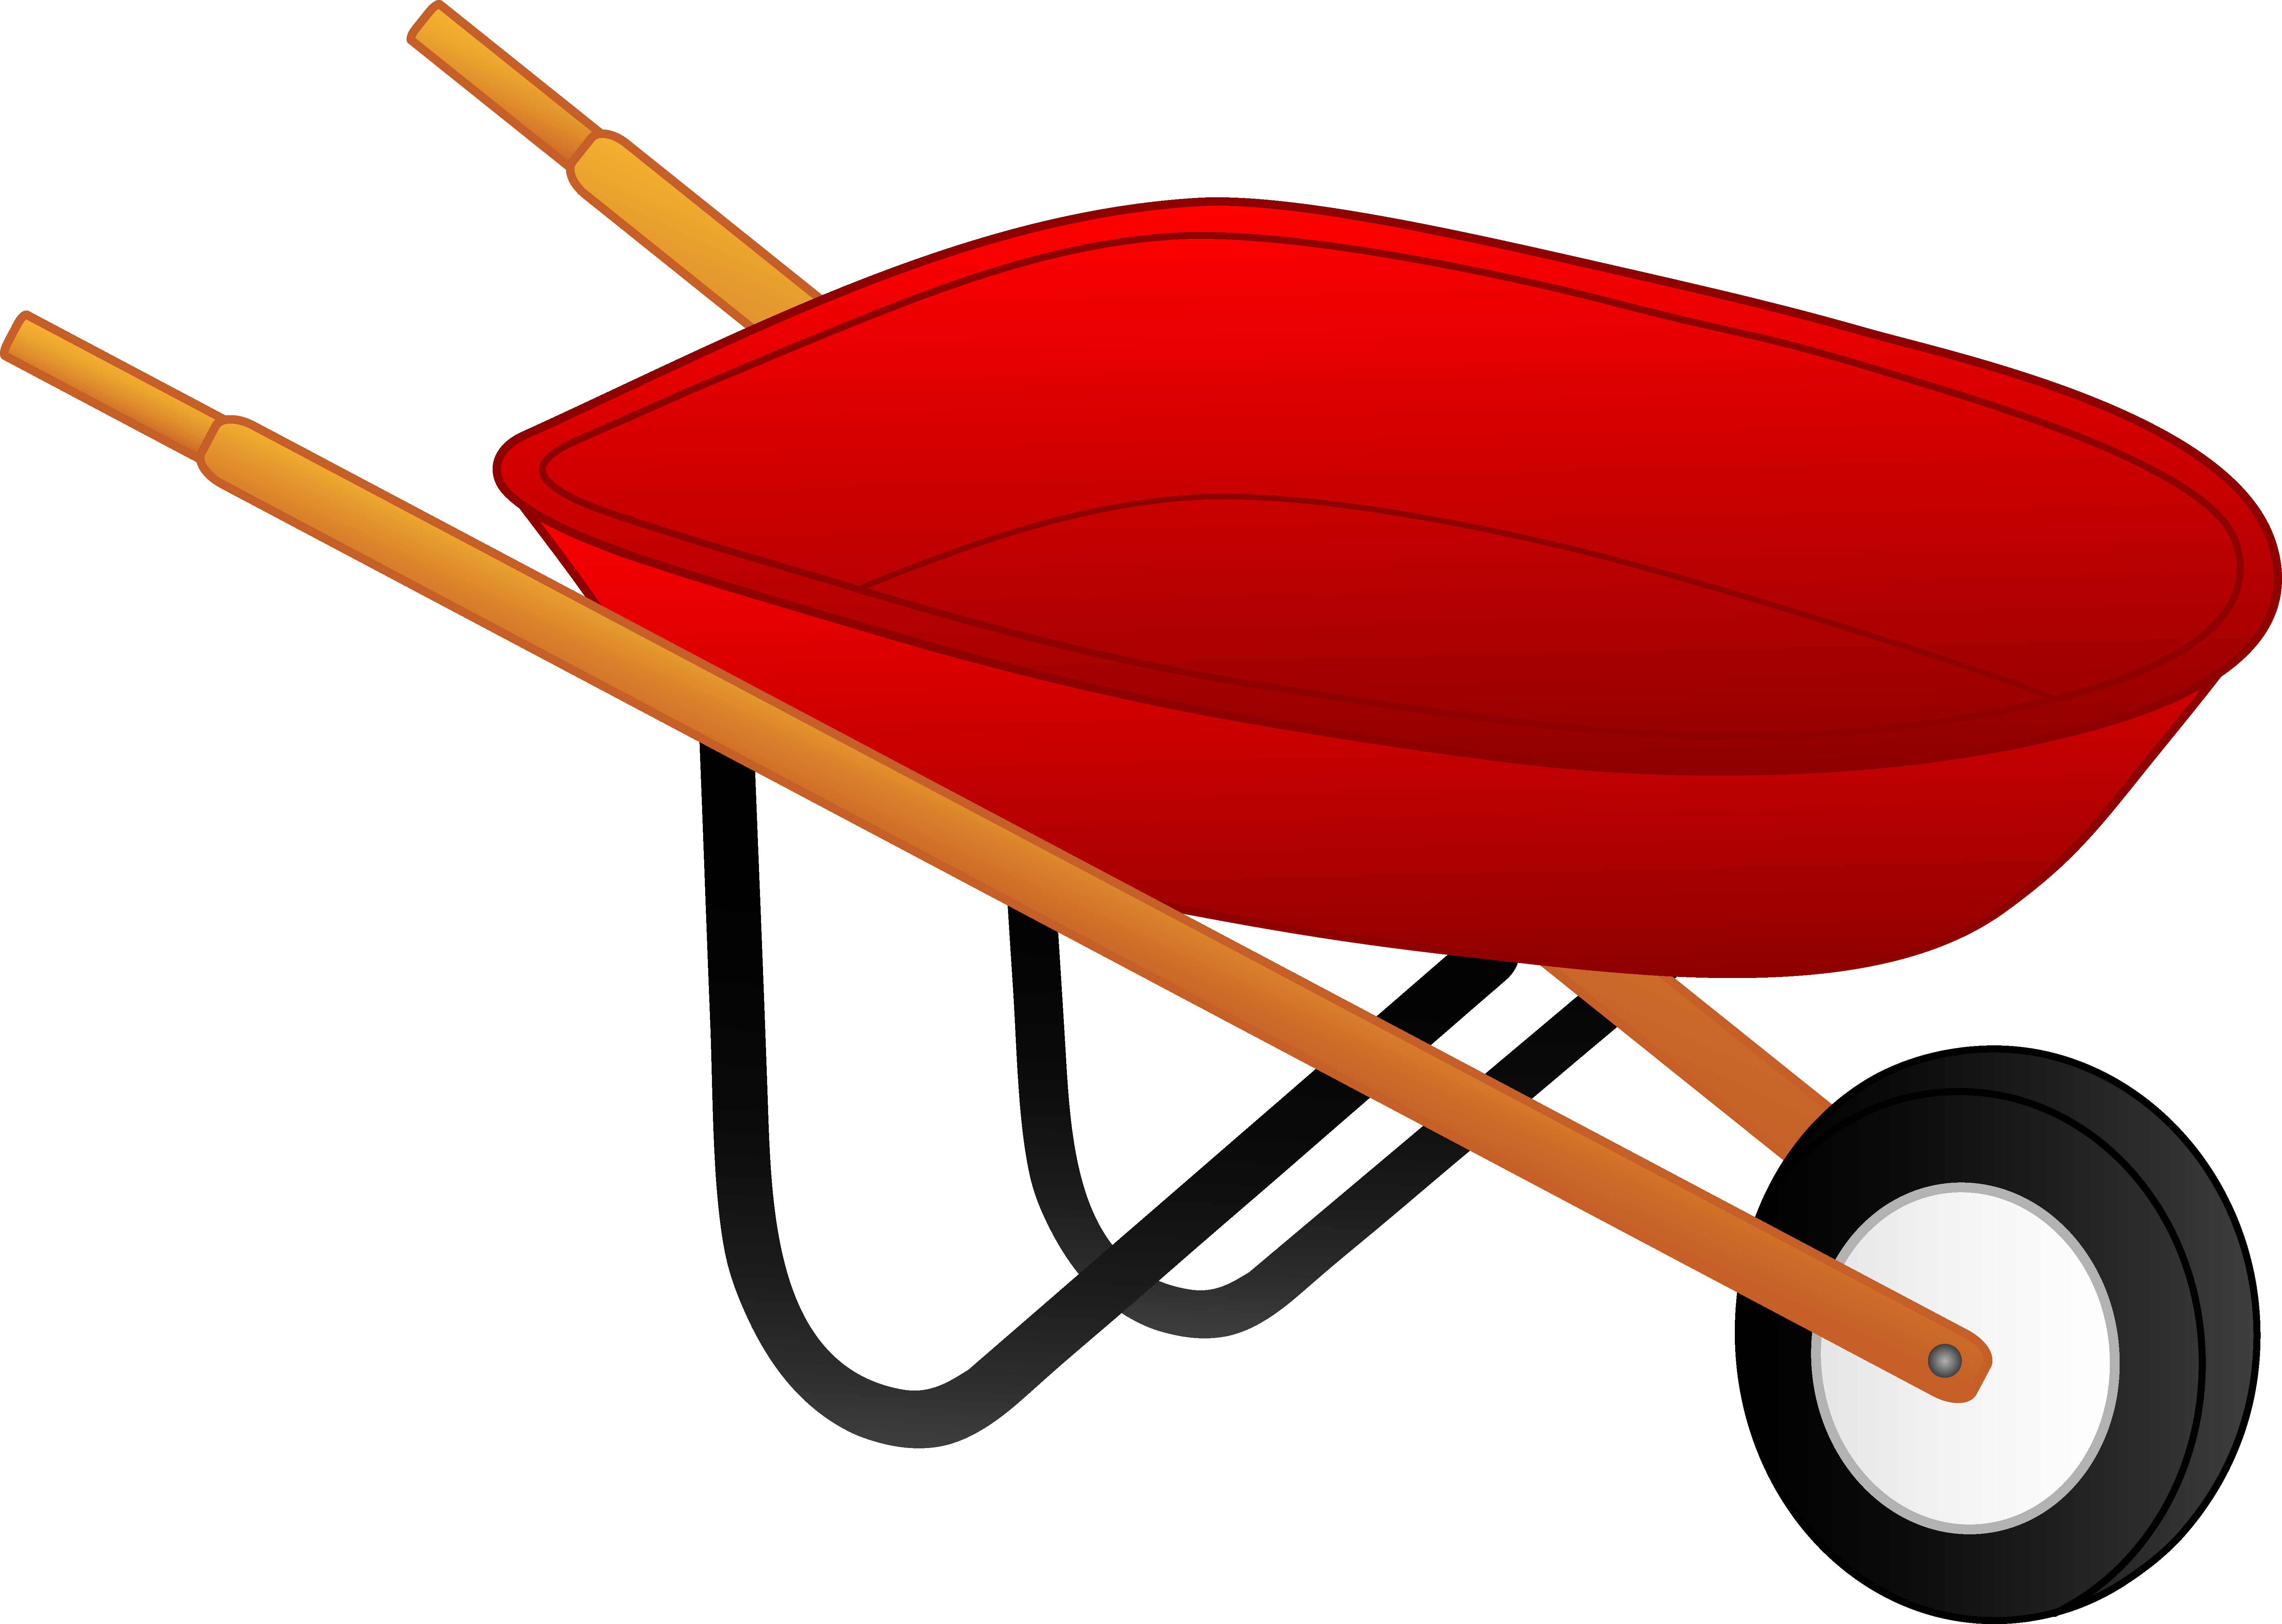 Free Wheelbarrow Pictures, Download Free Clip Art, Free Clip.